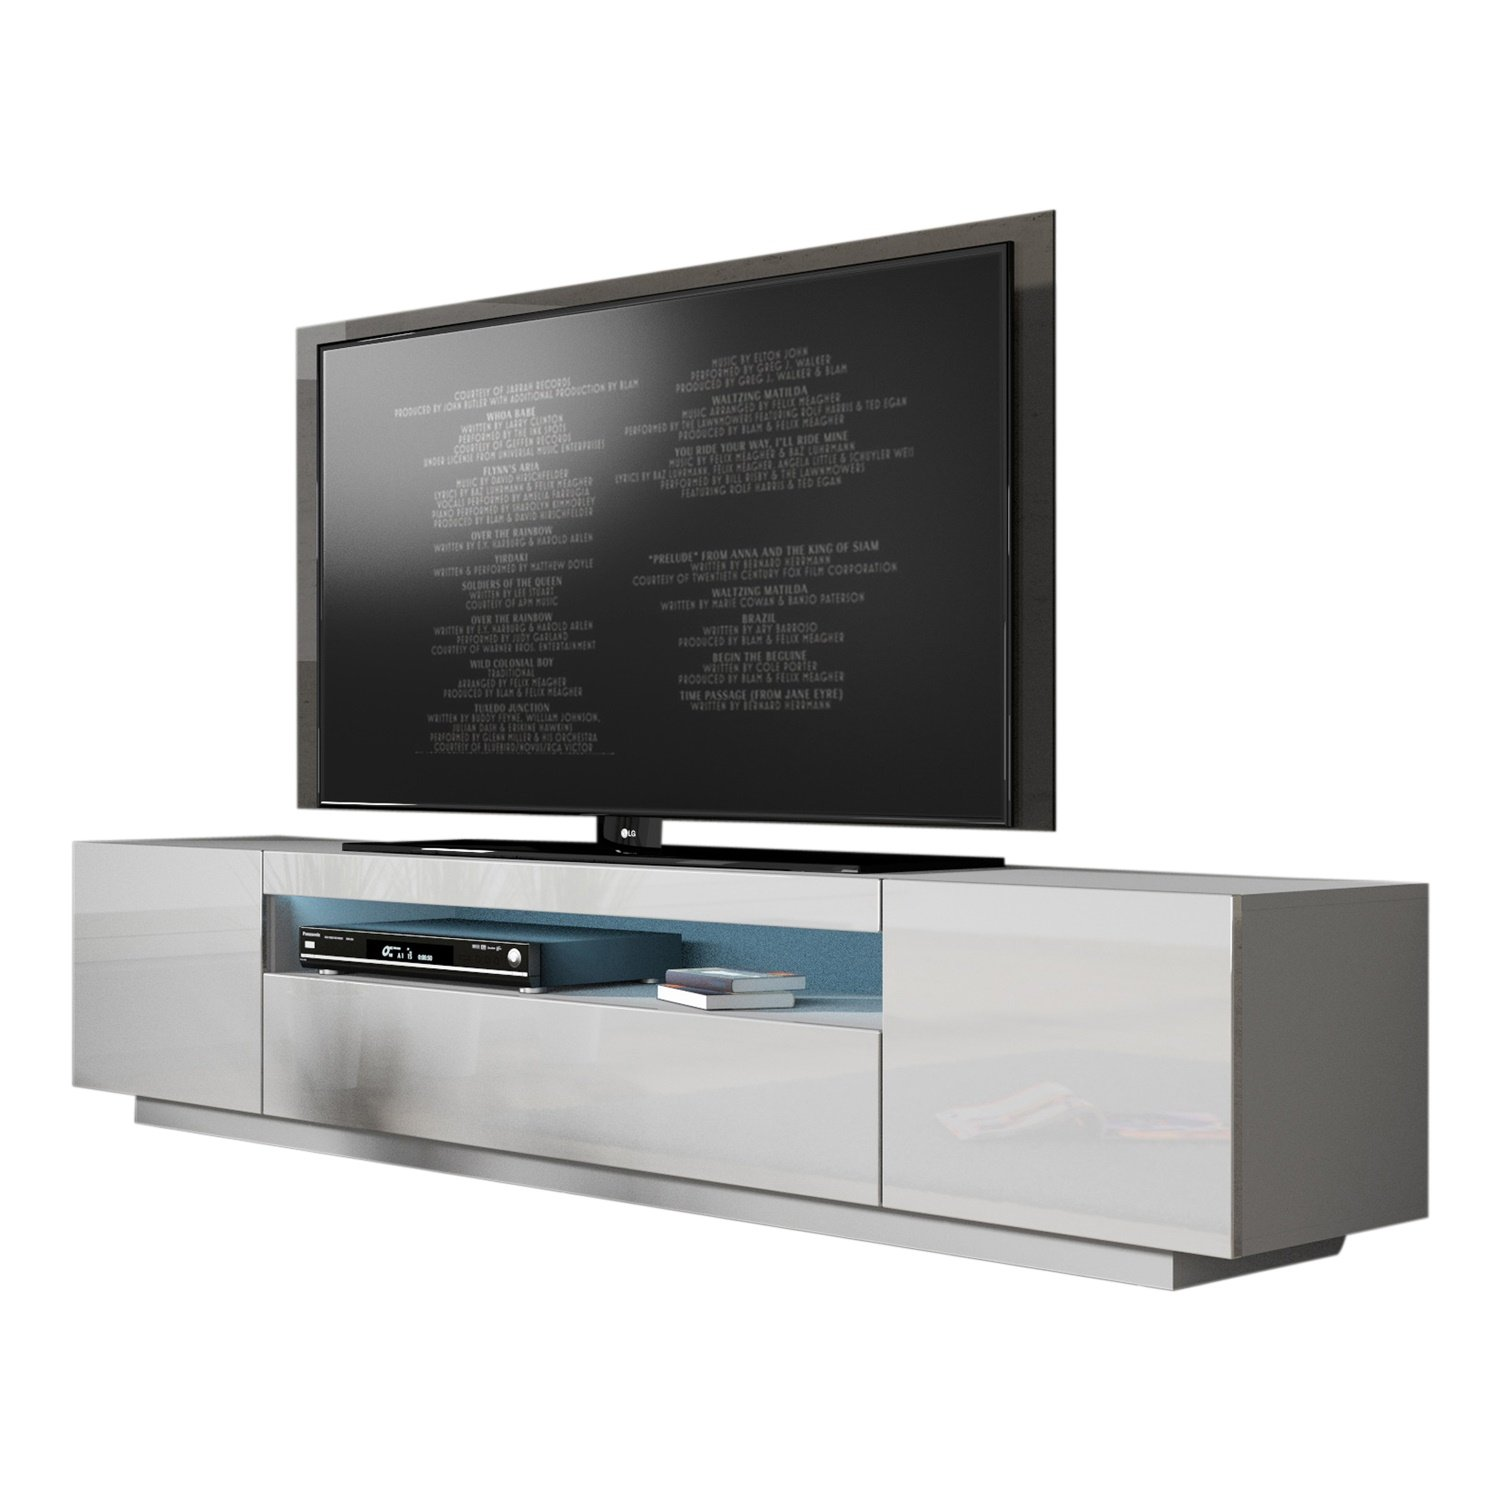 MEBLE FURNITURE & RUGS Miami 200 Modern 90'' TV Stand High Gloss Front, 16 Colors LED (White) by MEBLE FURNITURE & RUGS